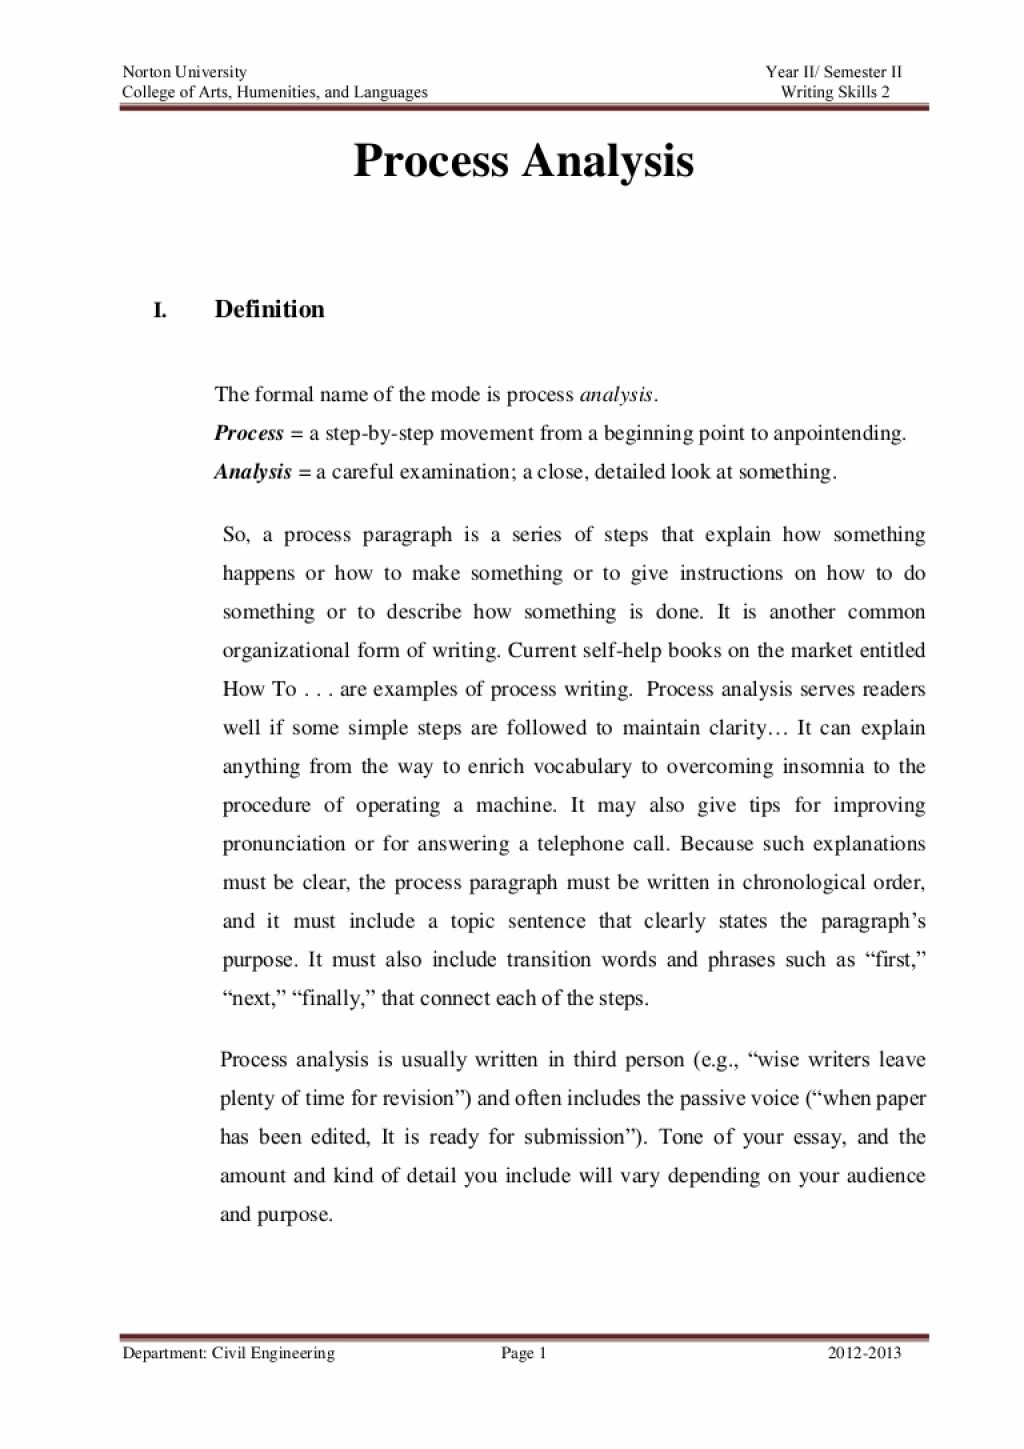 003 Processanalysisparagraph Phpapp01 Thumbnail What Is Process Essay Unusual A Complex Good Analysis Topic Description Large